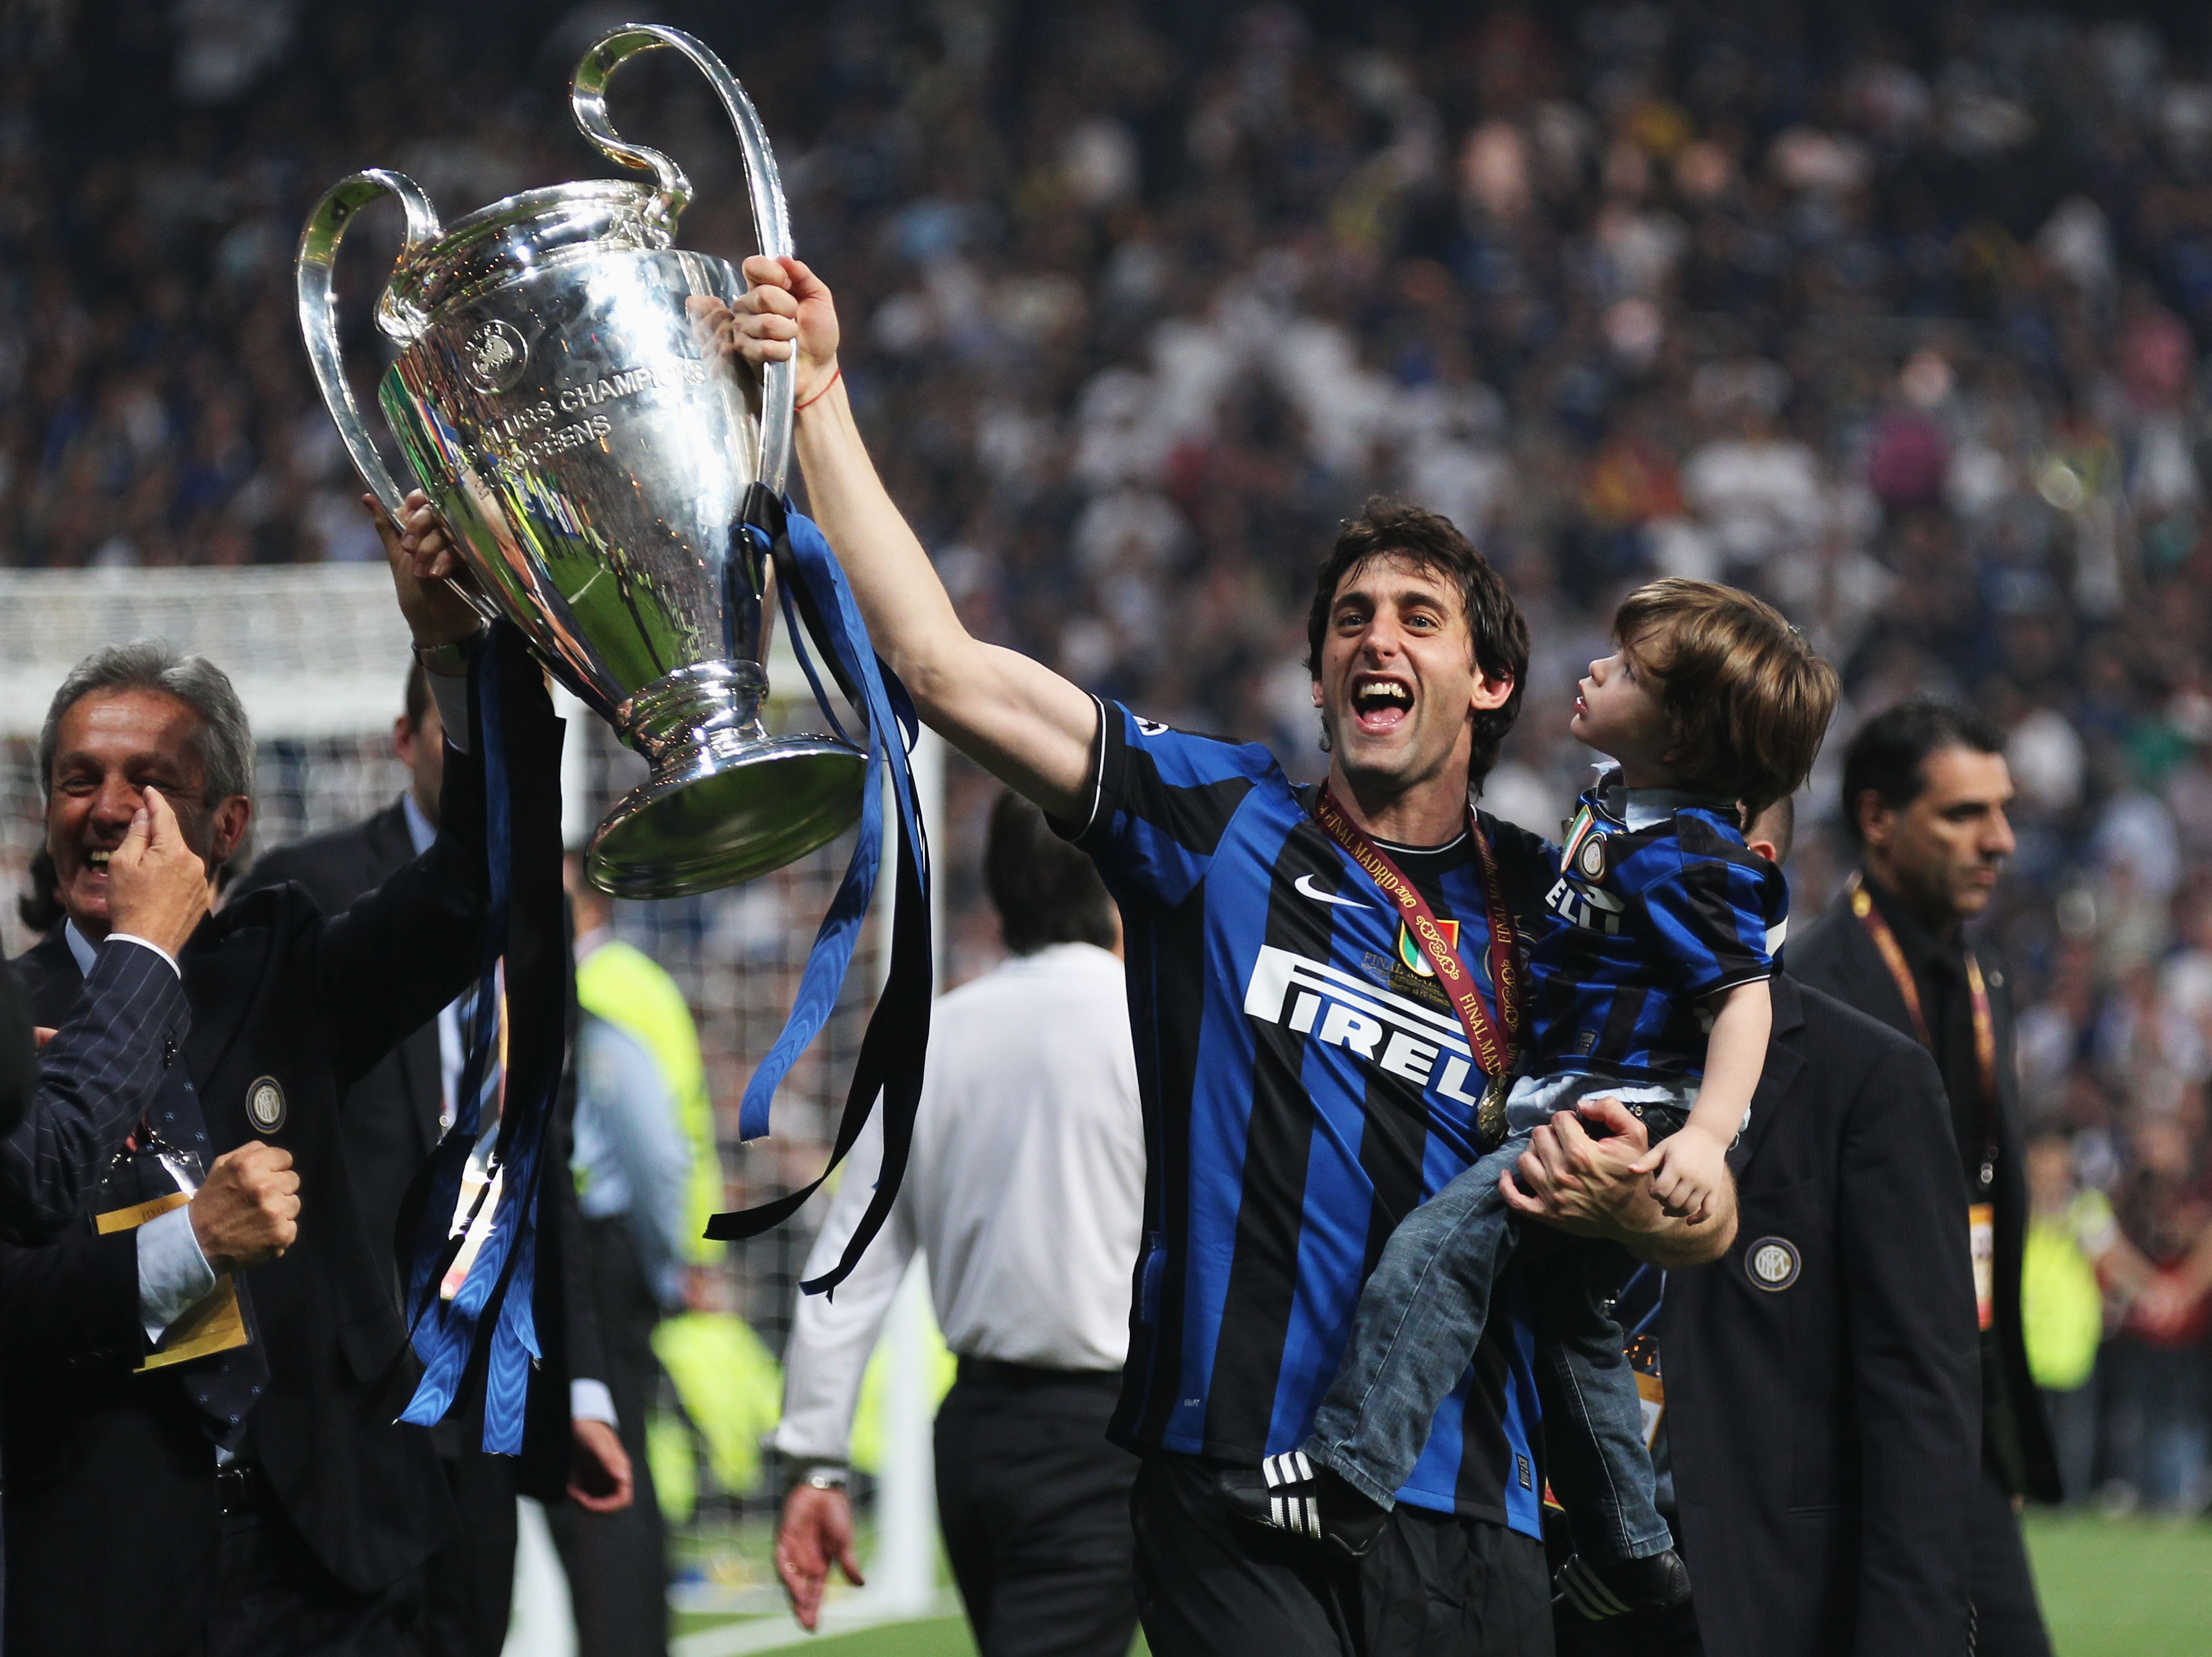 MADRID, SPAIN - MAY 22:  Double goalscorer Diego Milito of Inter Milan celebrates victory after the UEFA Champions League Final match between FC Bayern Muenchen and Inter Milan at the Estadio Santiago Bernabeu on May 22, 2010 in Madrid, Spain.  (Photo by